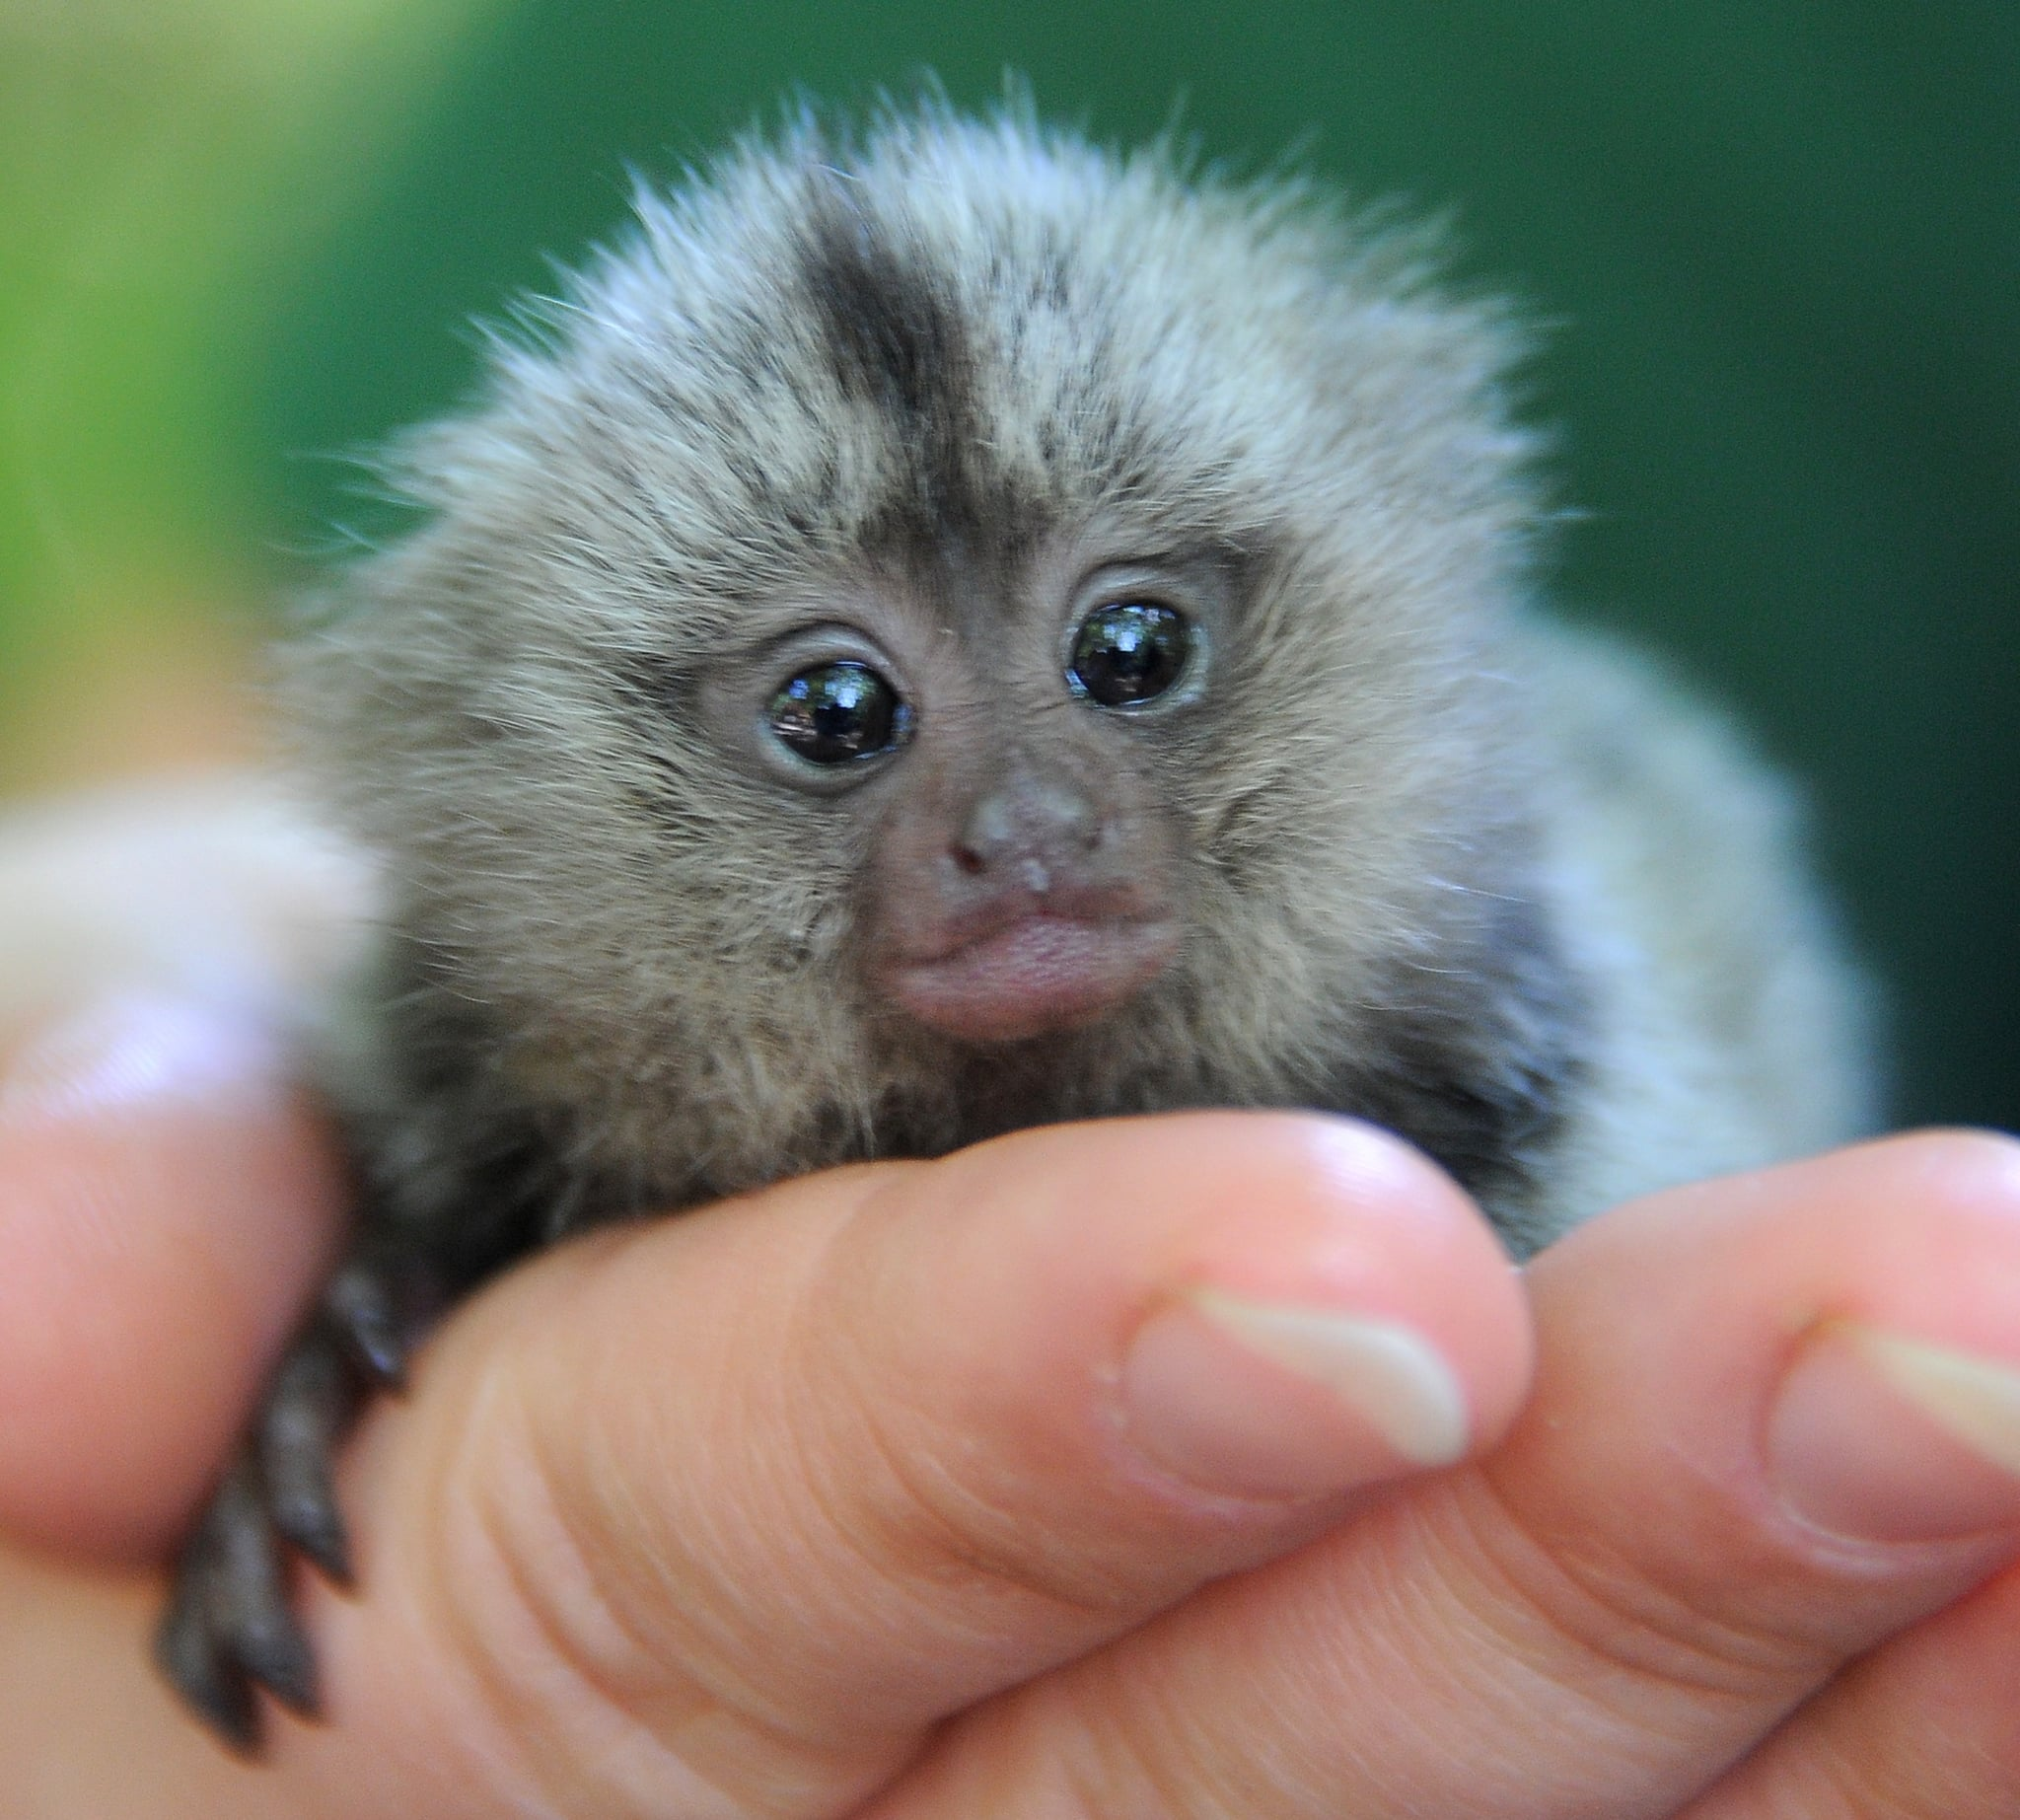 A newborn marmoset gets a hand from zookeepers in his first few hours of life.